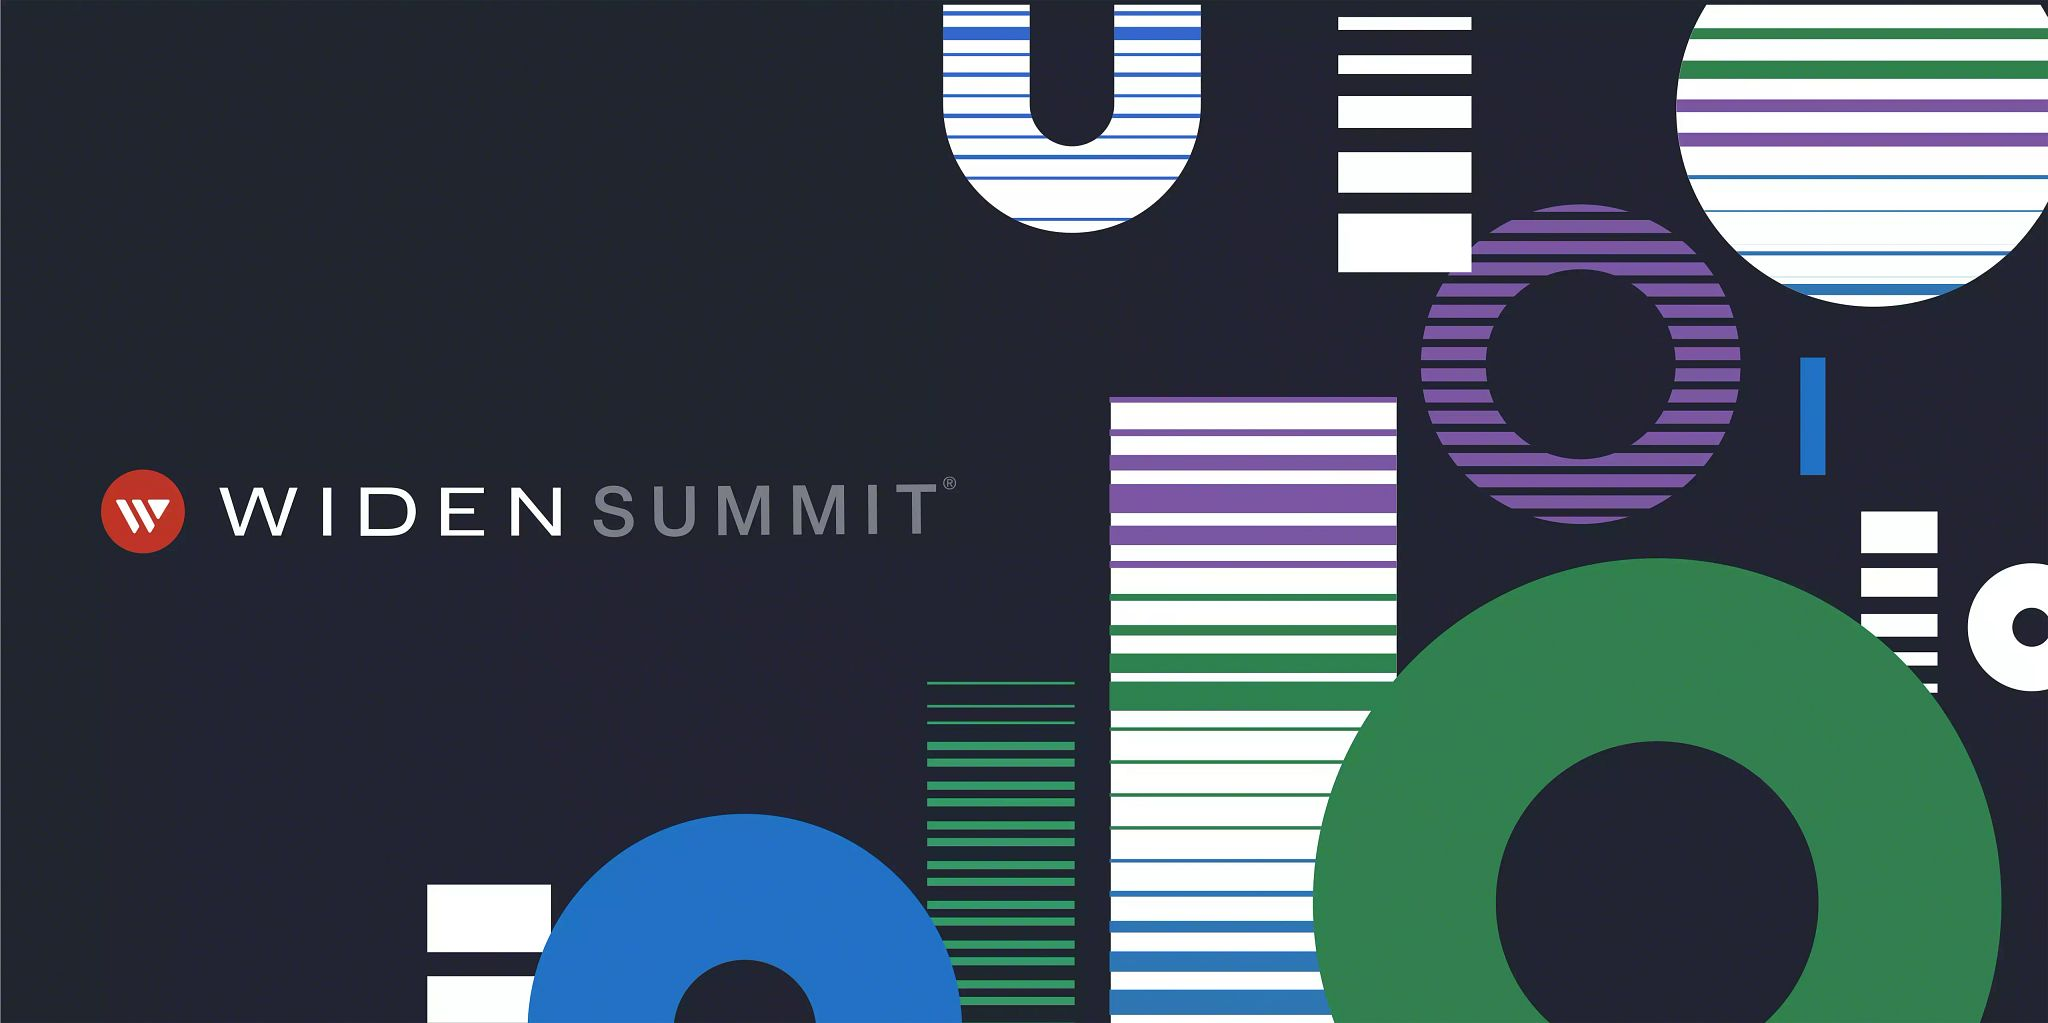 Article header image: Illustrated shapes to represents 1s and 0s on the right and the Widen Summit logo on the left in the center.